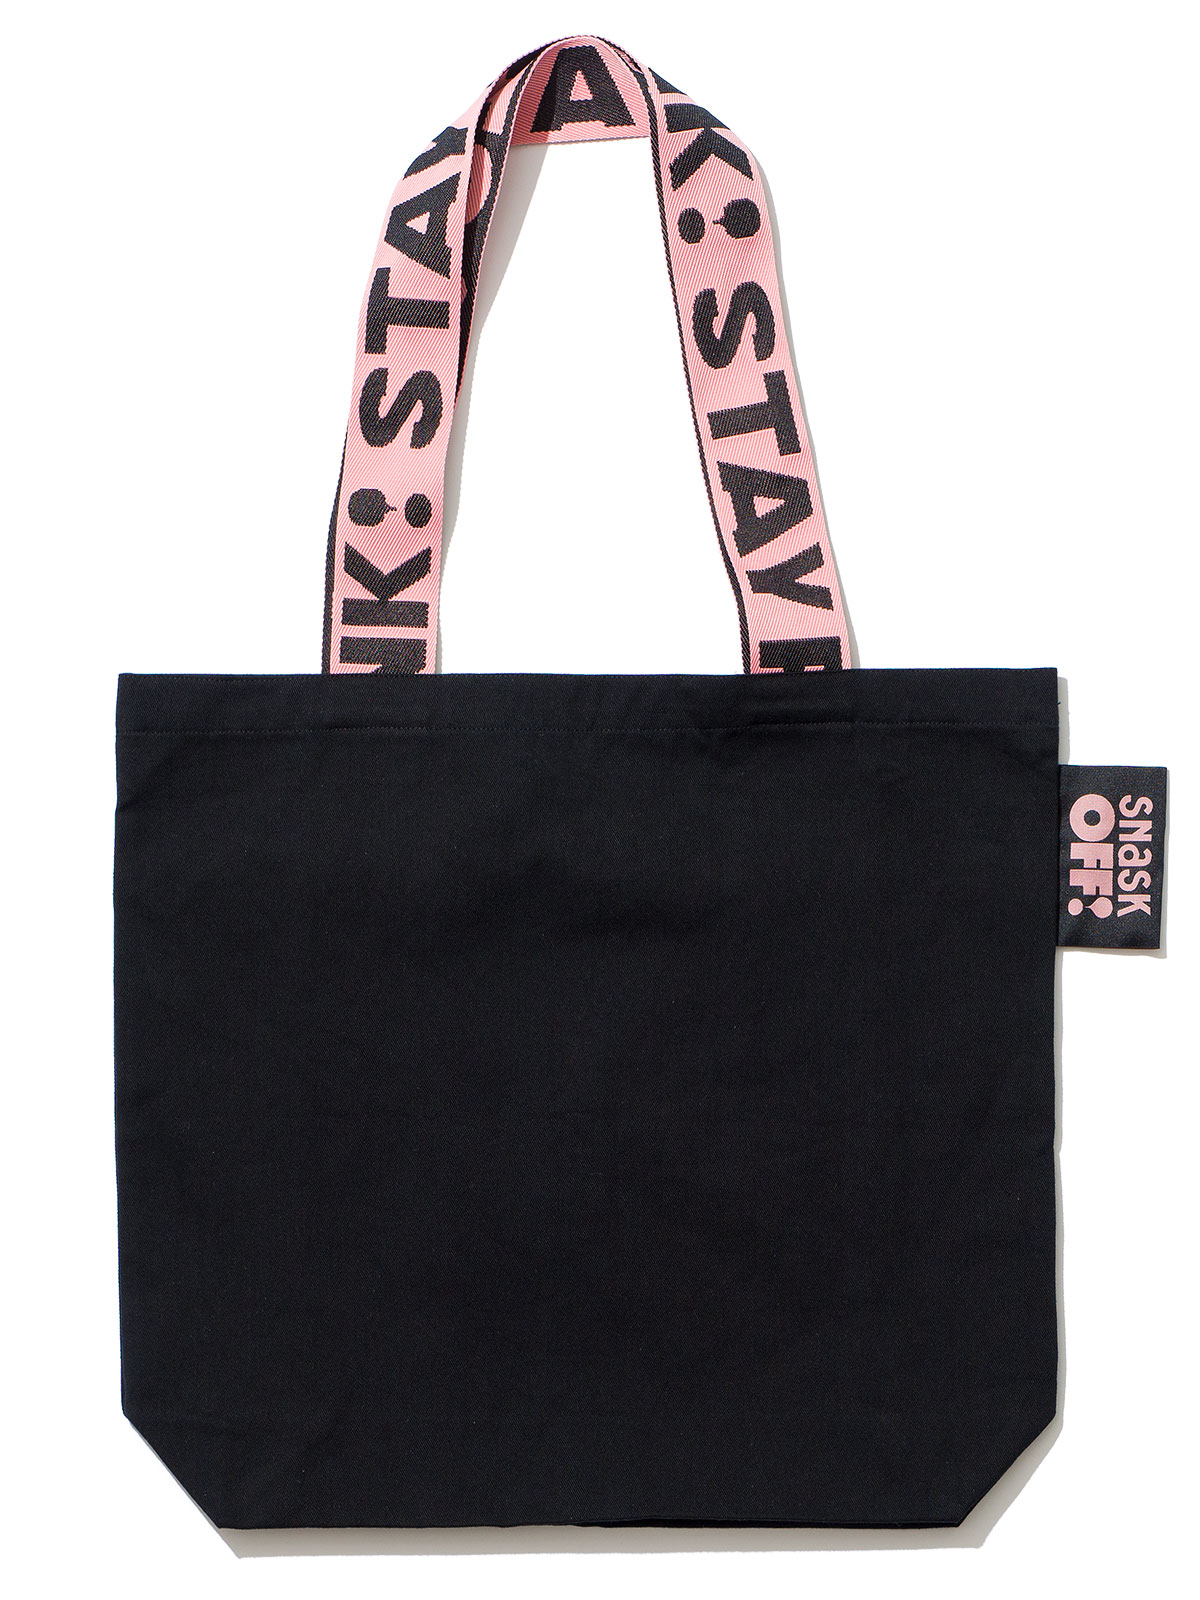 Image of Stay Pink Strap Bag Black